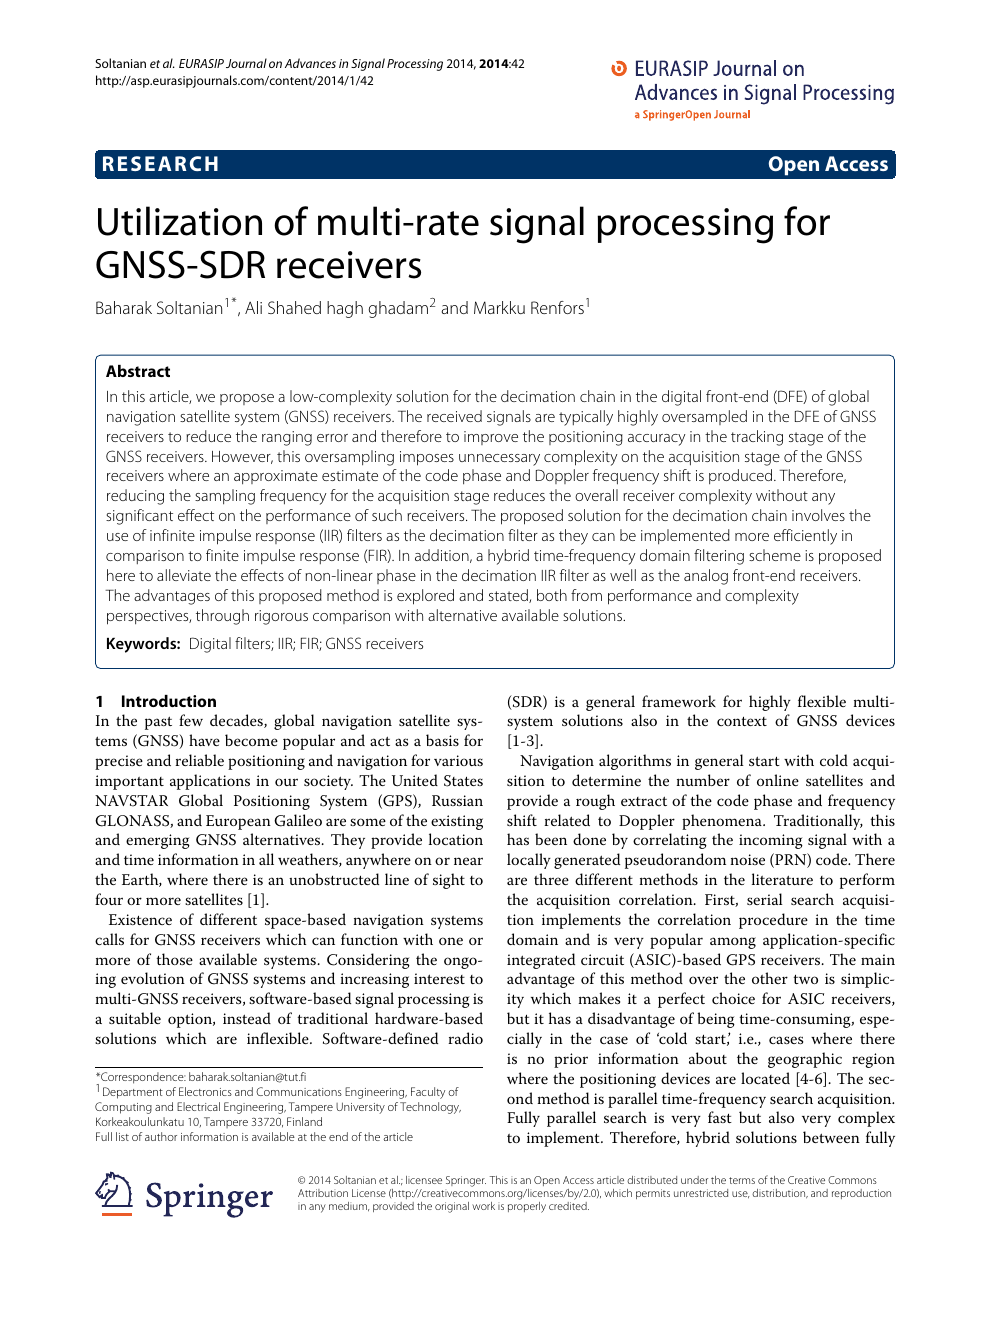 Utilization of multi-rate signal processing for GNSS-SDR receivers